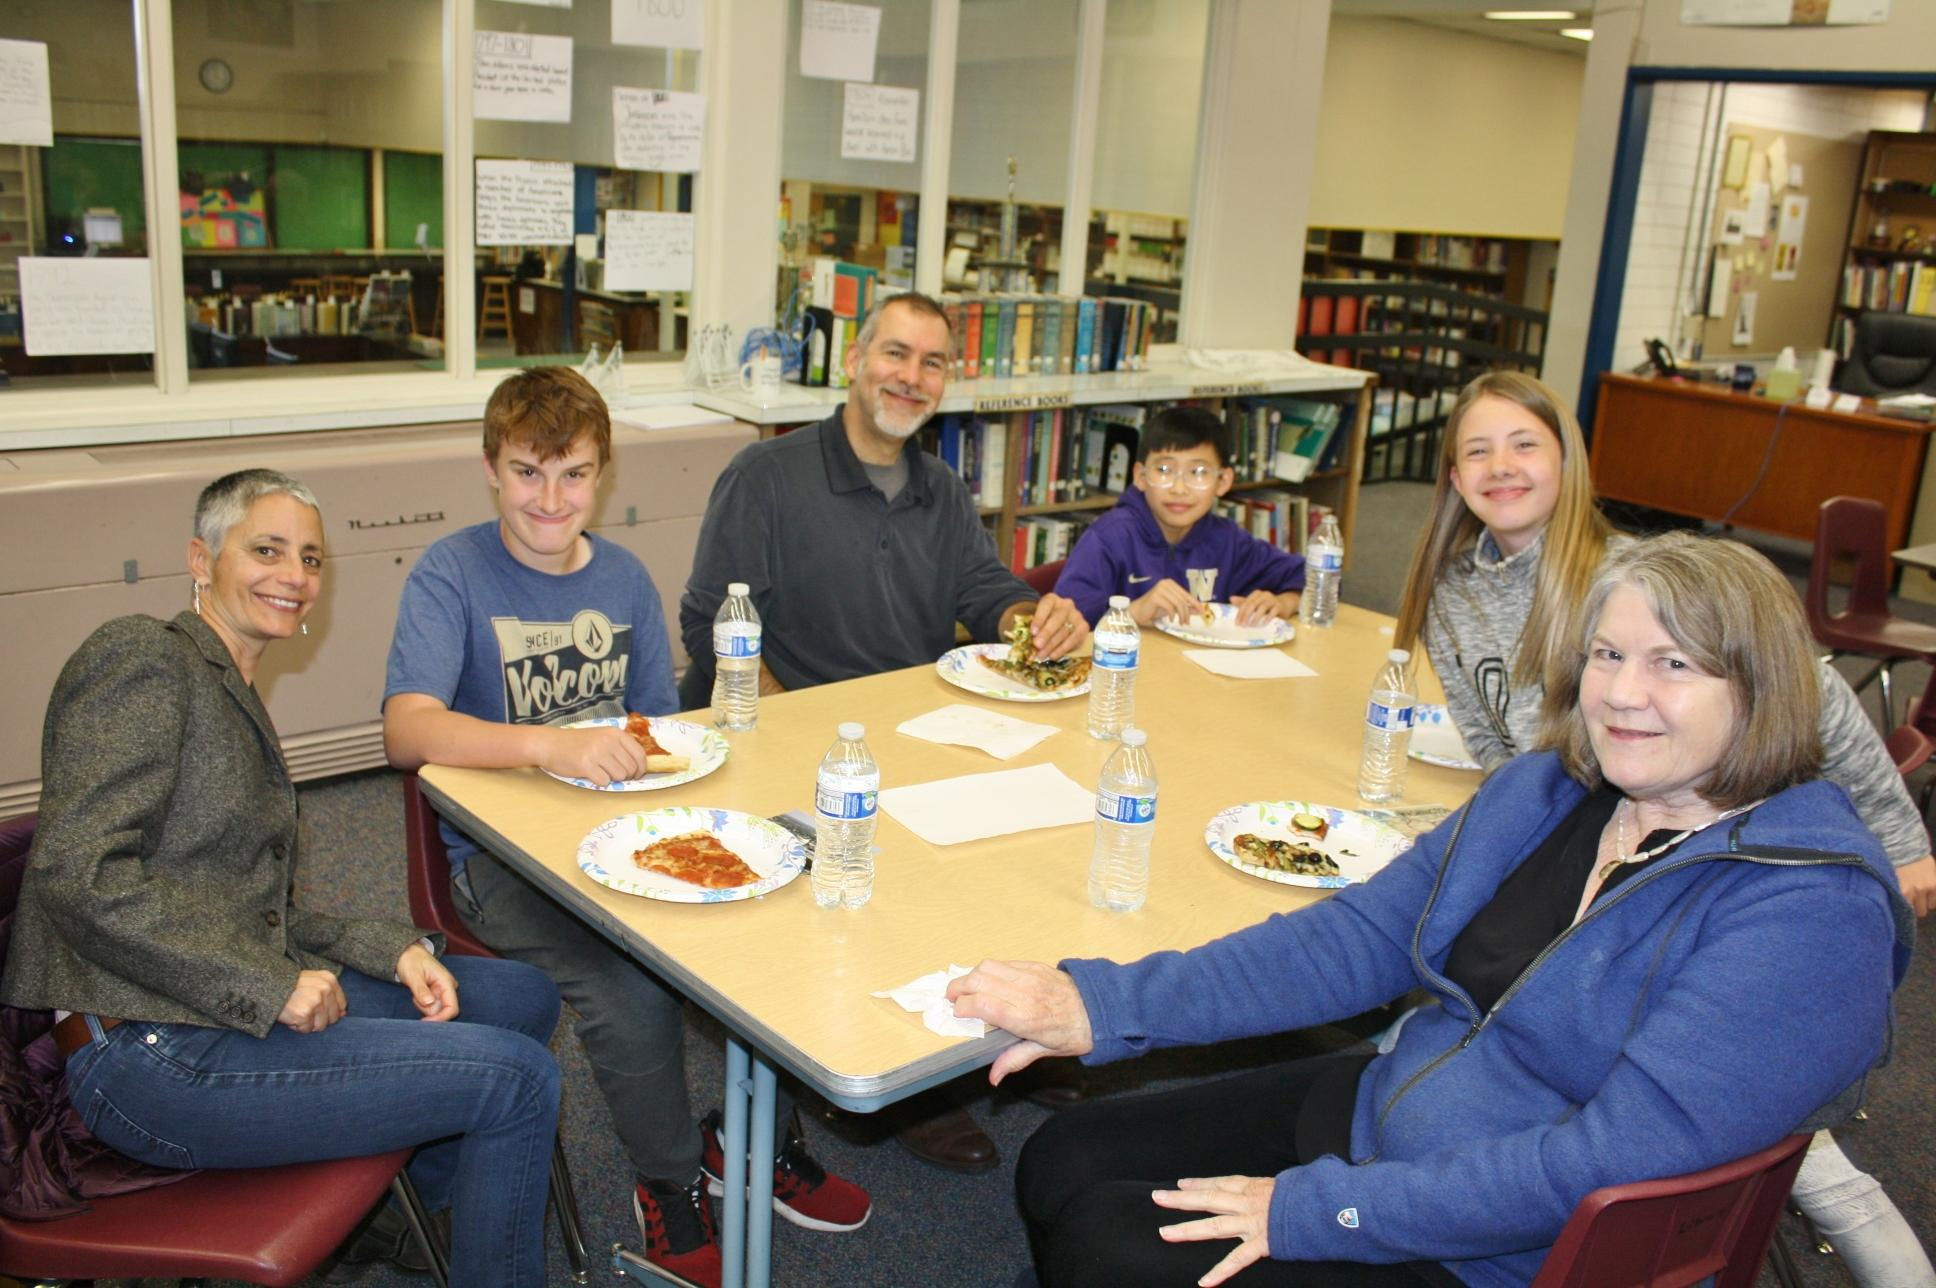 Courtesy photoMembers of the Ashland Kiwanis share pizza with their 'Postcard Buddies' at Ashland Middle School.